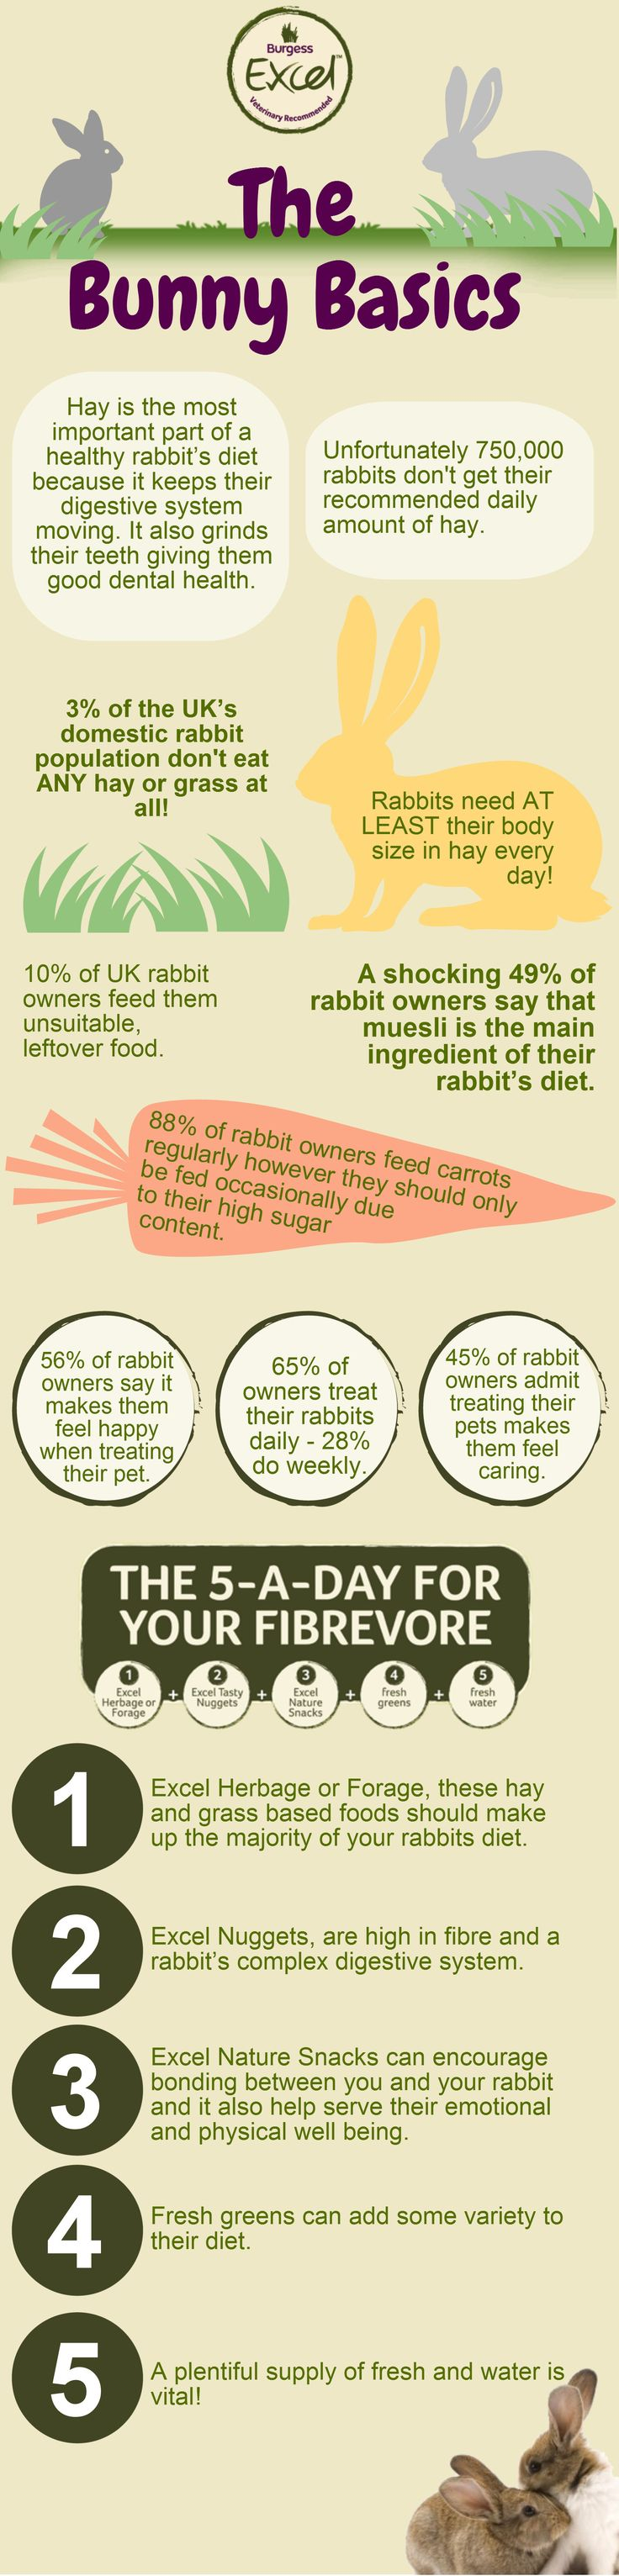 Rabbits deserve their reputation as great pets – they are friendly, inquisitive, content to play with their owners and can happily be held and stroked. With the correct diet, care and handling you and your rabbit will have a long and happy time together.  *Statistics from The PDSA*